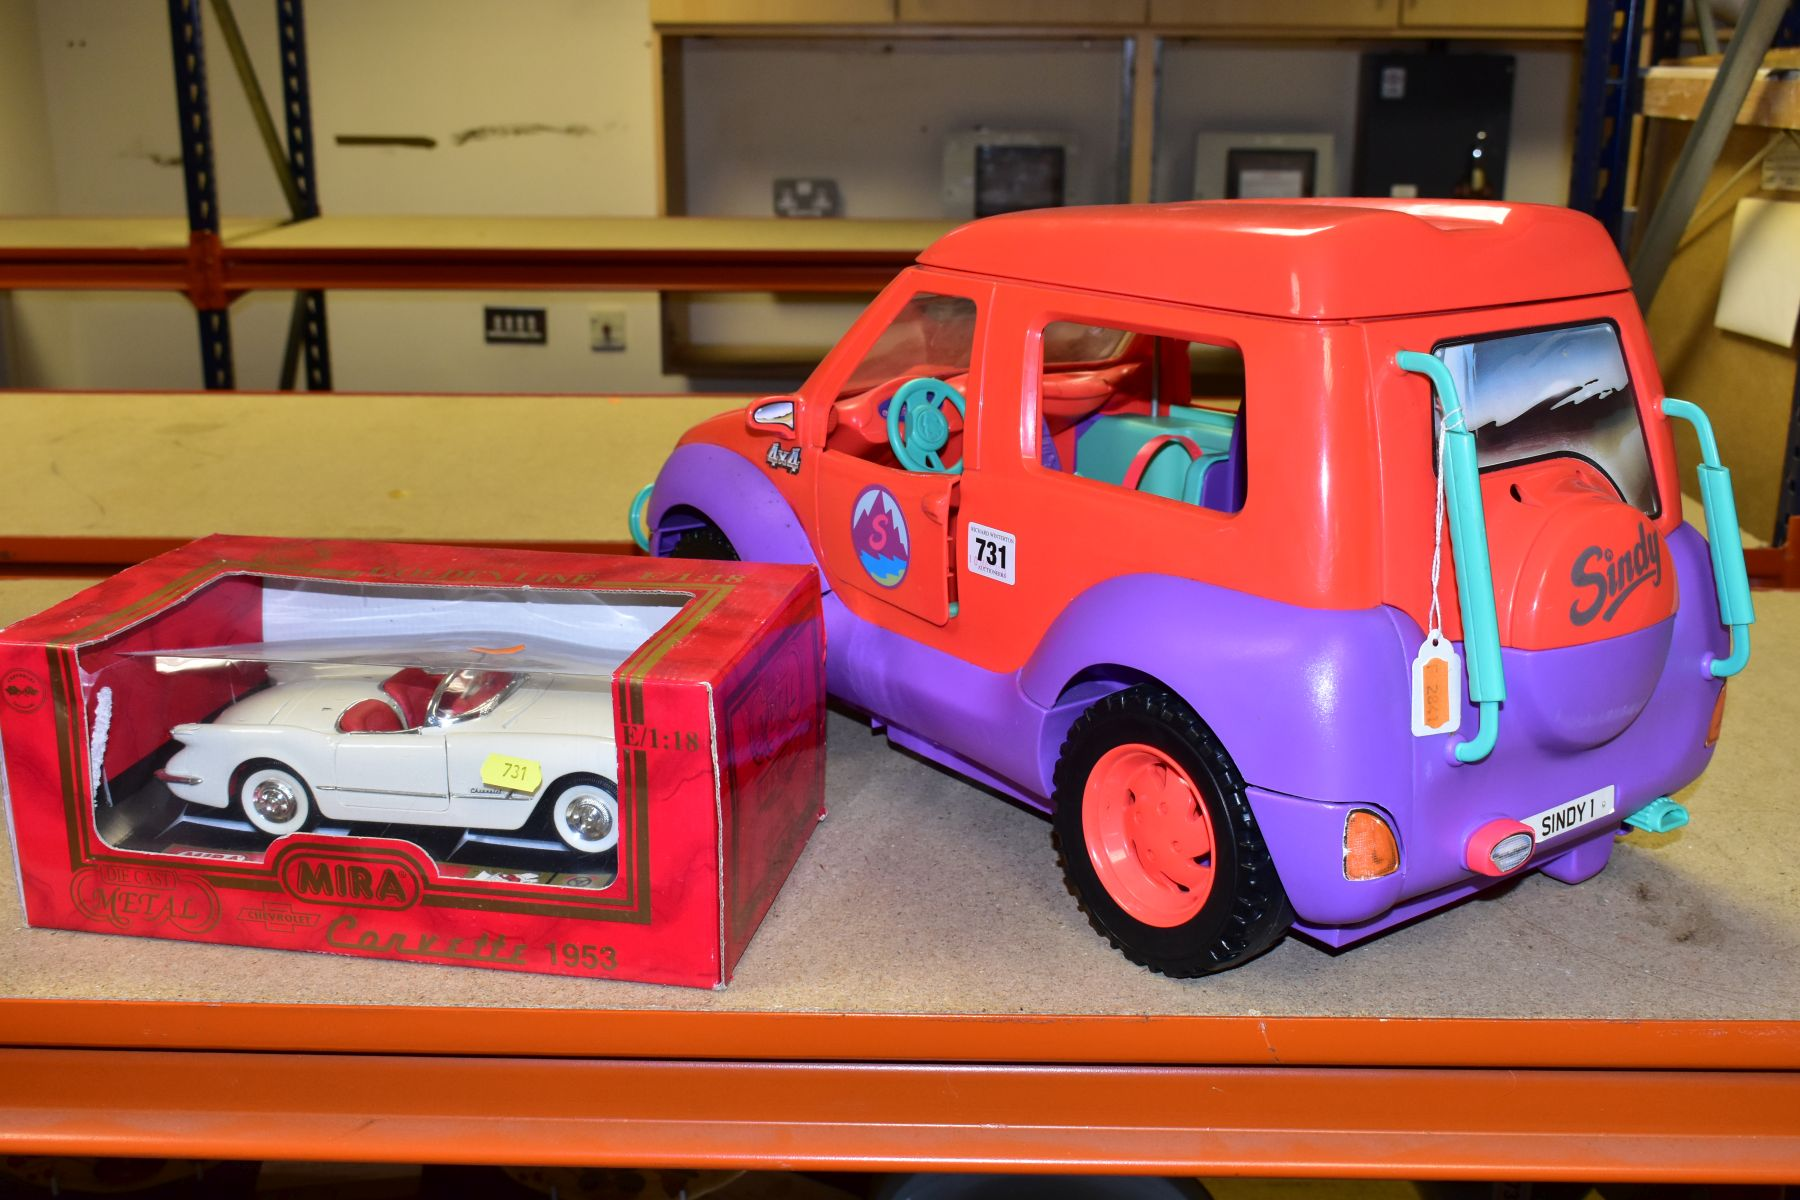 AN UNBOXED SINDY - SPACE 4X4 CAMPER VAN/HOLIDAY HOME, missing some accessories but otherwise appears - Image 5 of 5